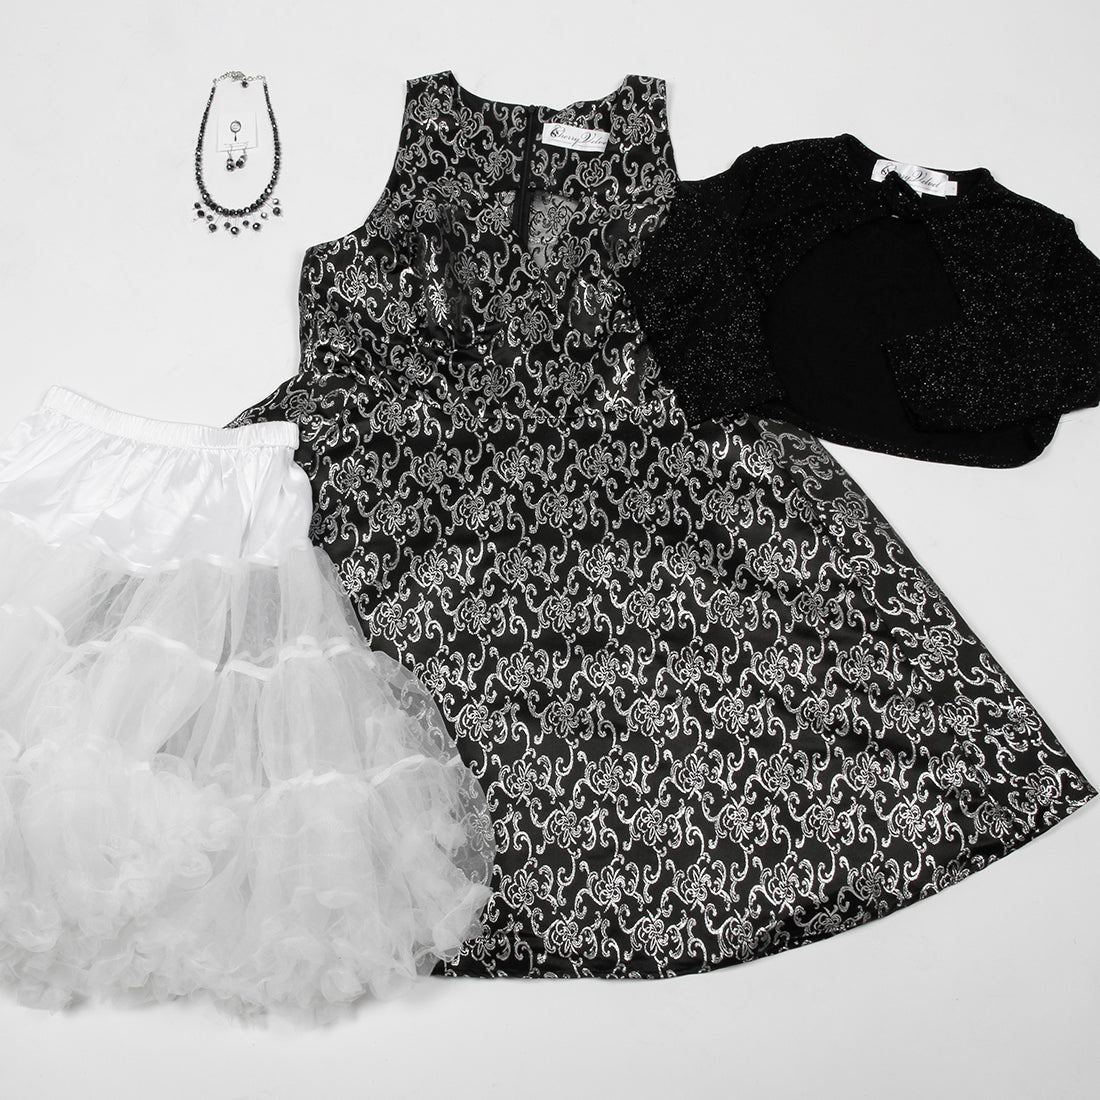 Norma Silver Filigree dress, white chiffon crinoline, Samantha shrug in black sparkle